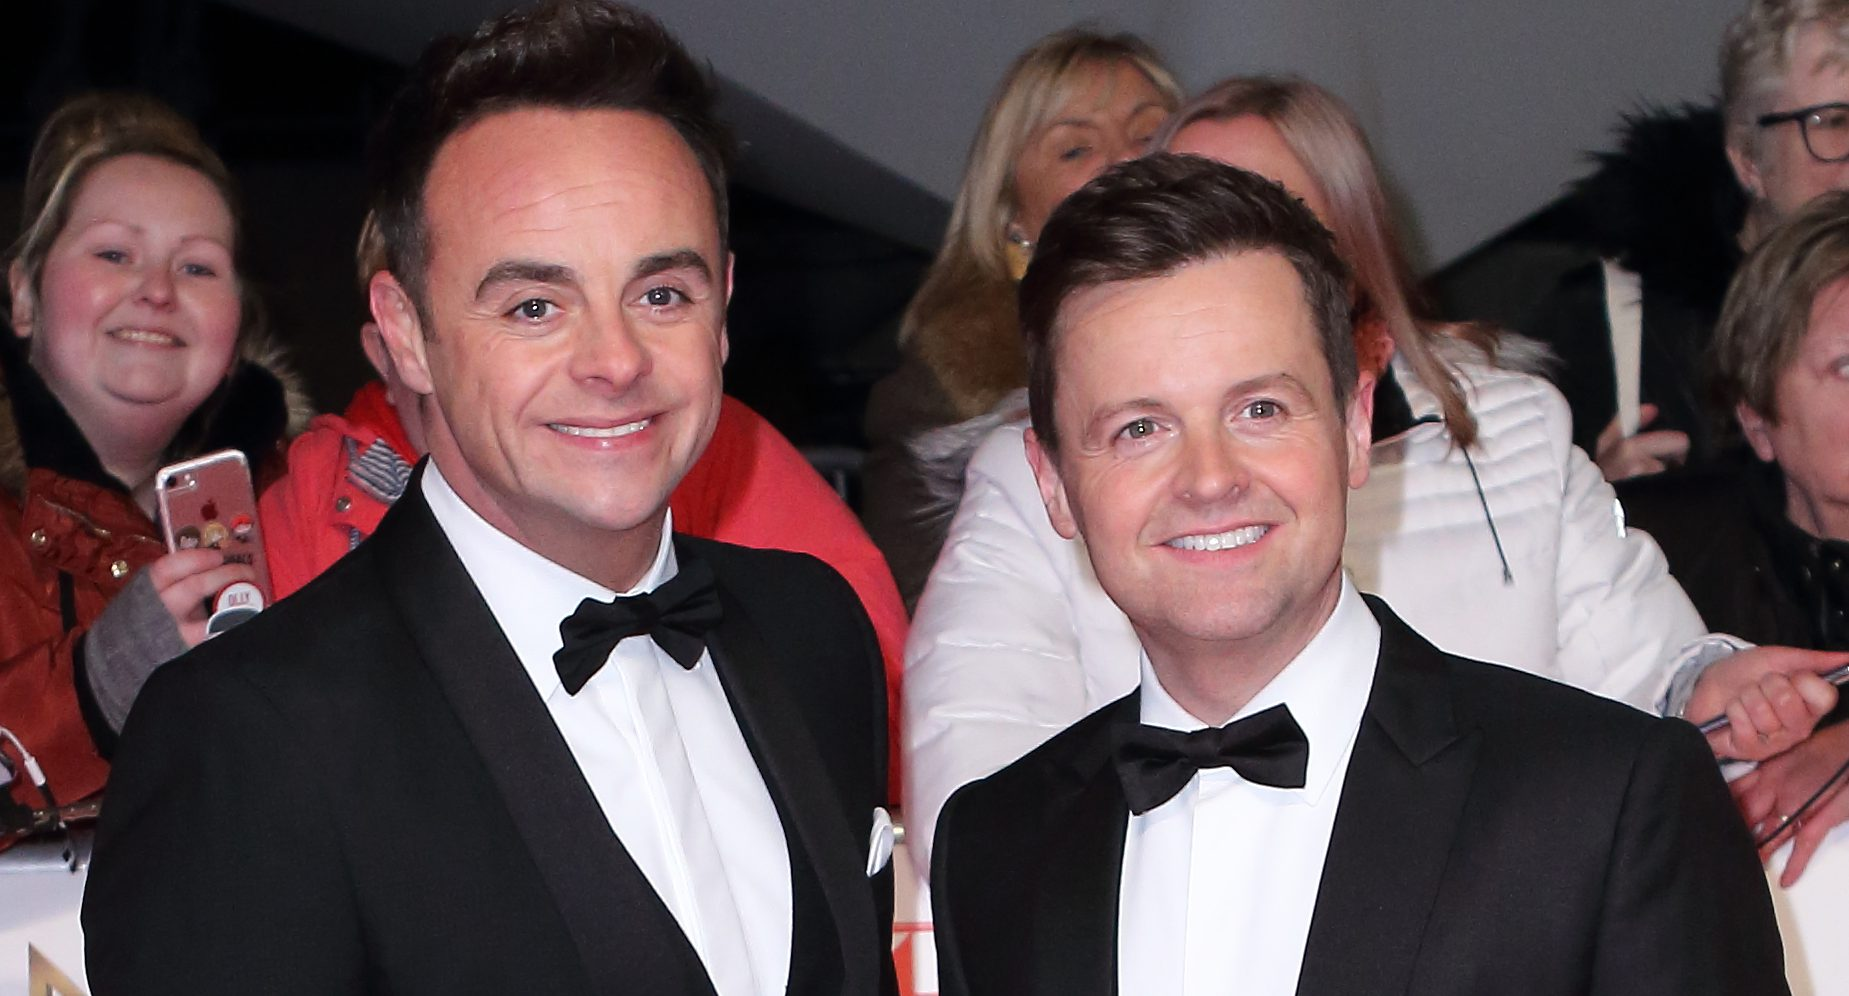 NTAs: Viewers divided as Ant and Dec named Best Presenter for 19th year running